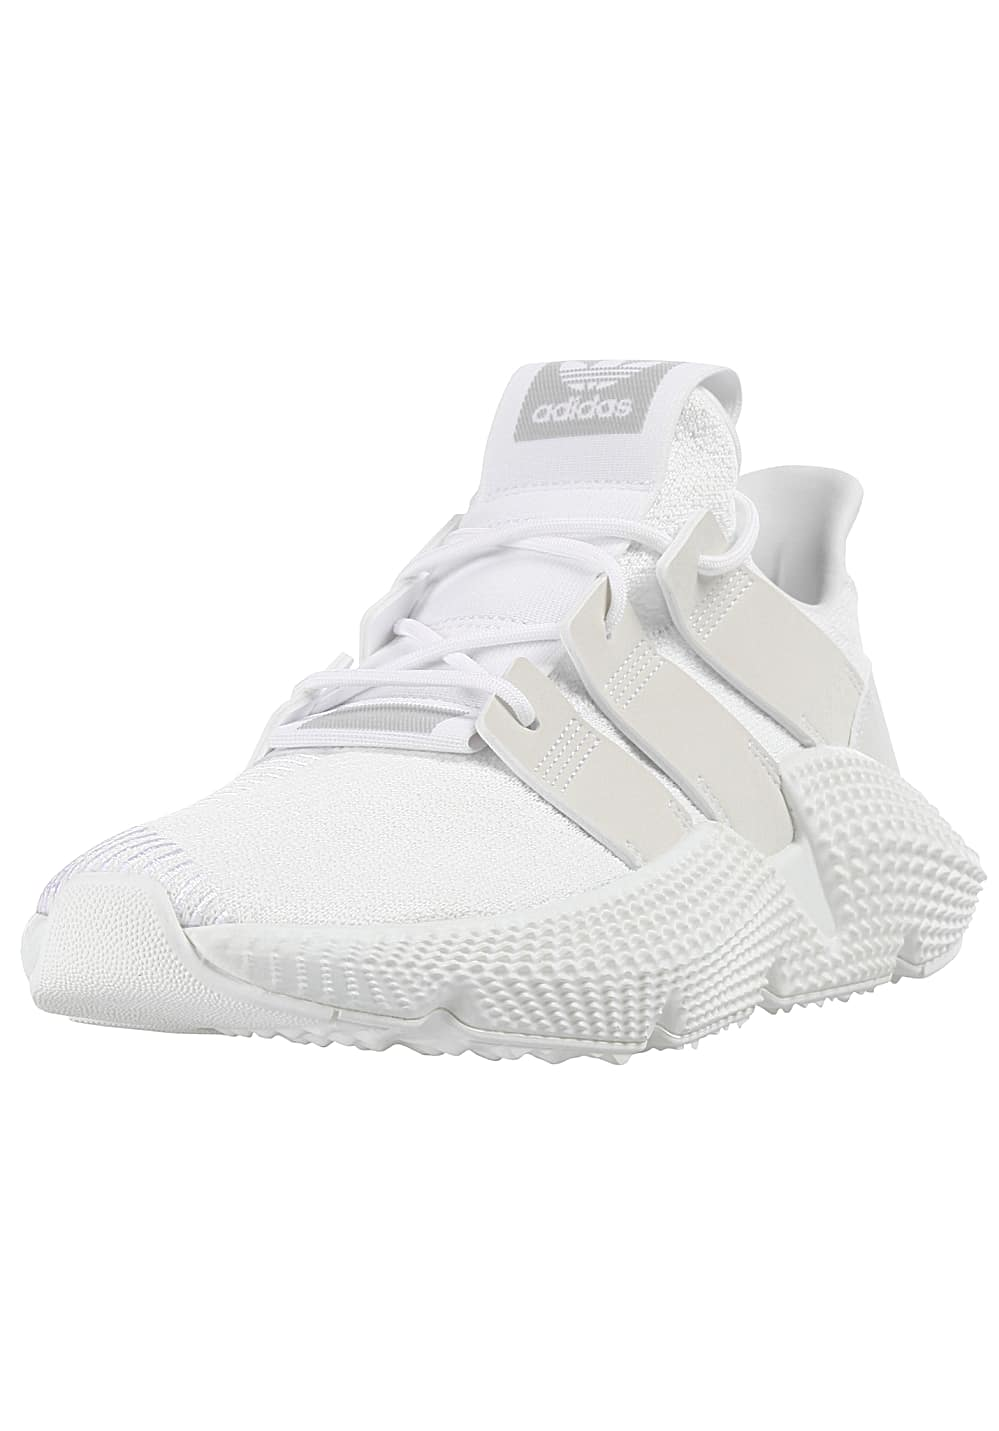 reputable site 269f7 34861 Next. -10%. ADIDAS ORIGINALS. Prophere - Sneaker per Uomo